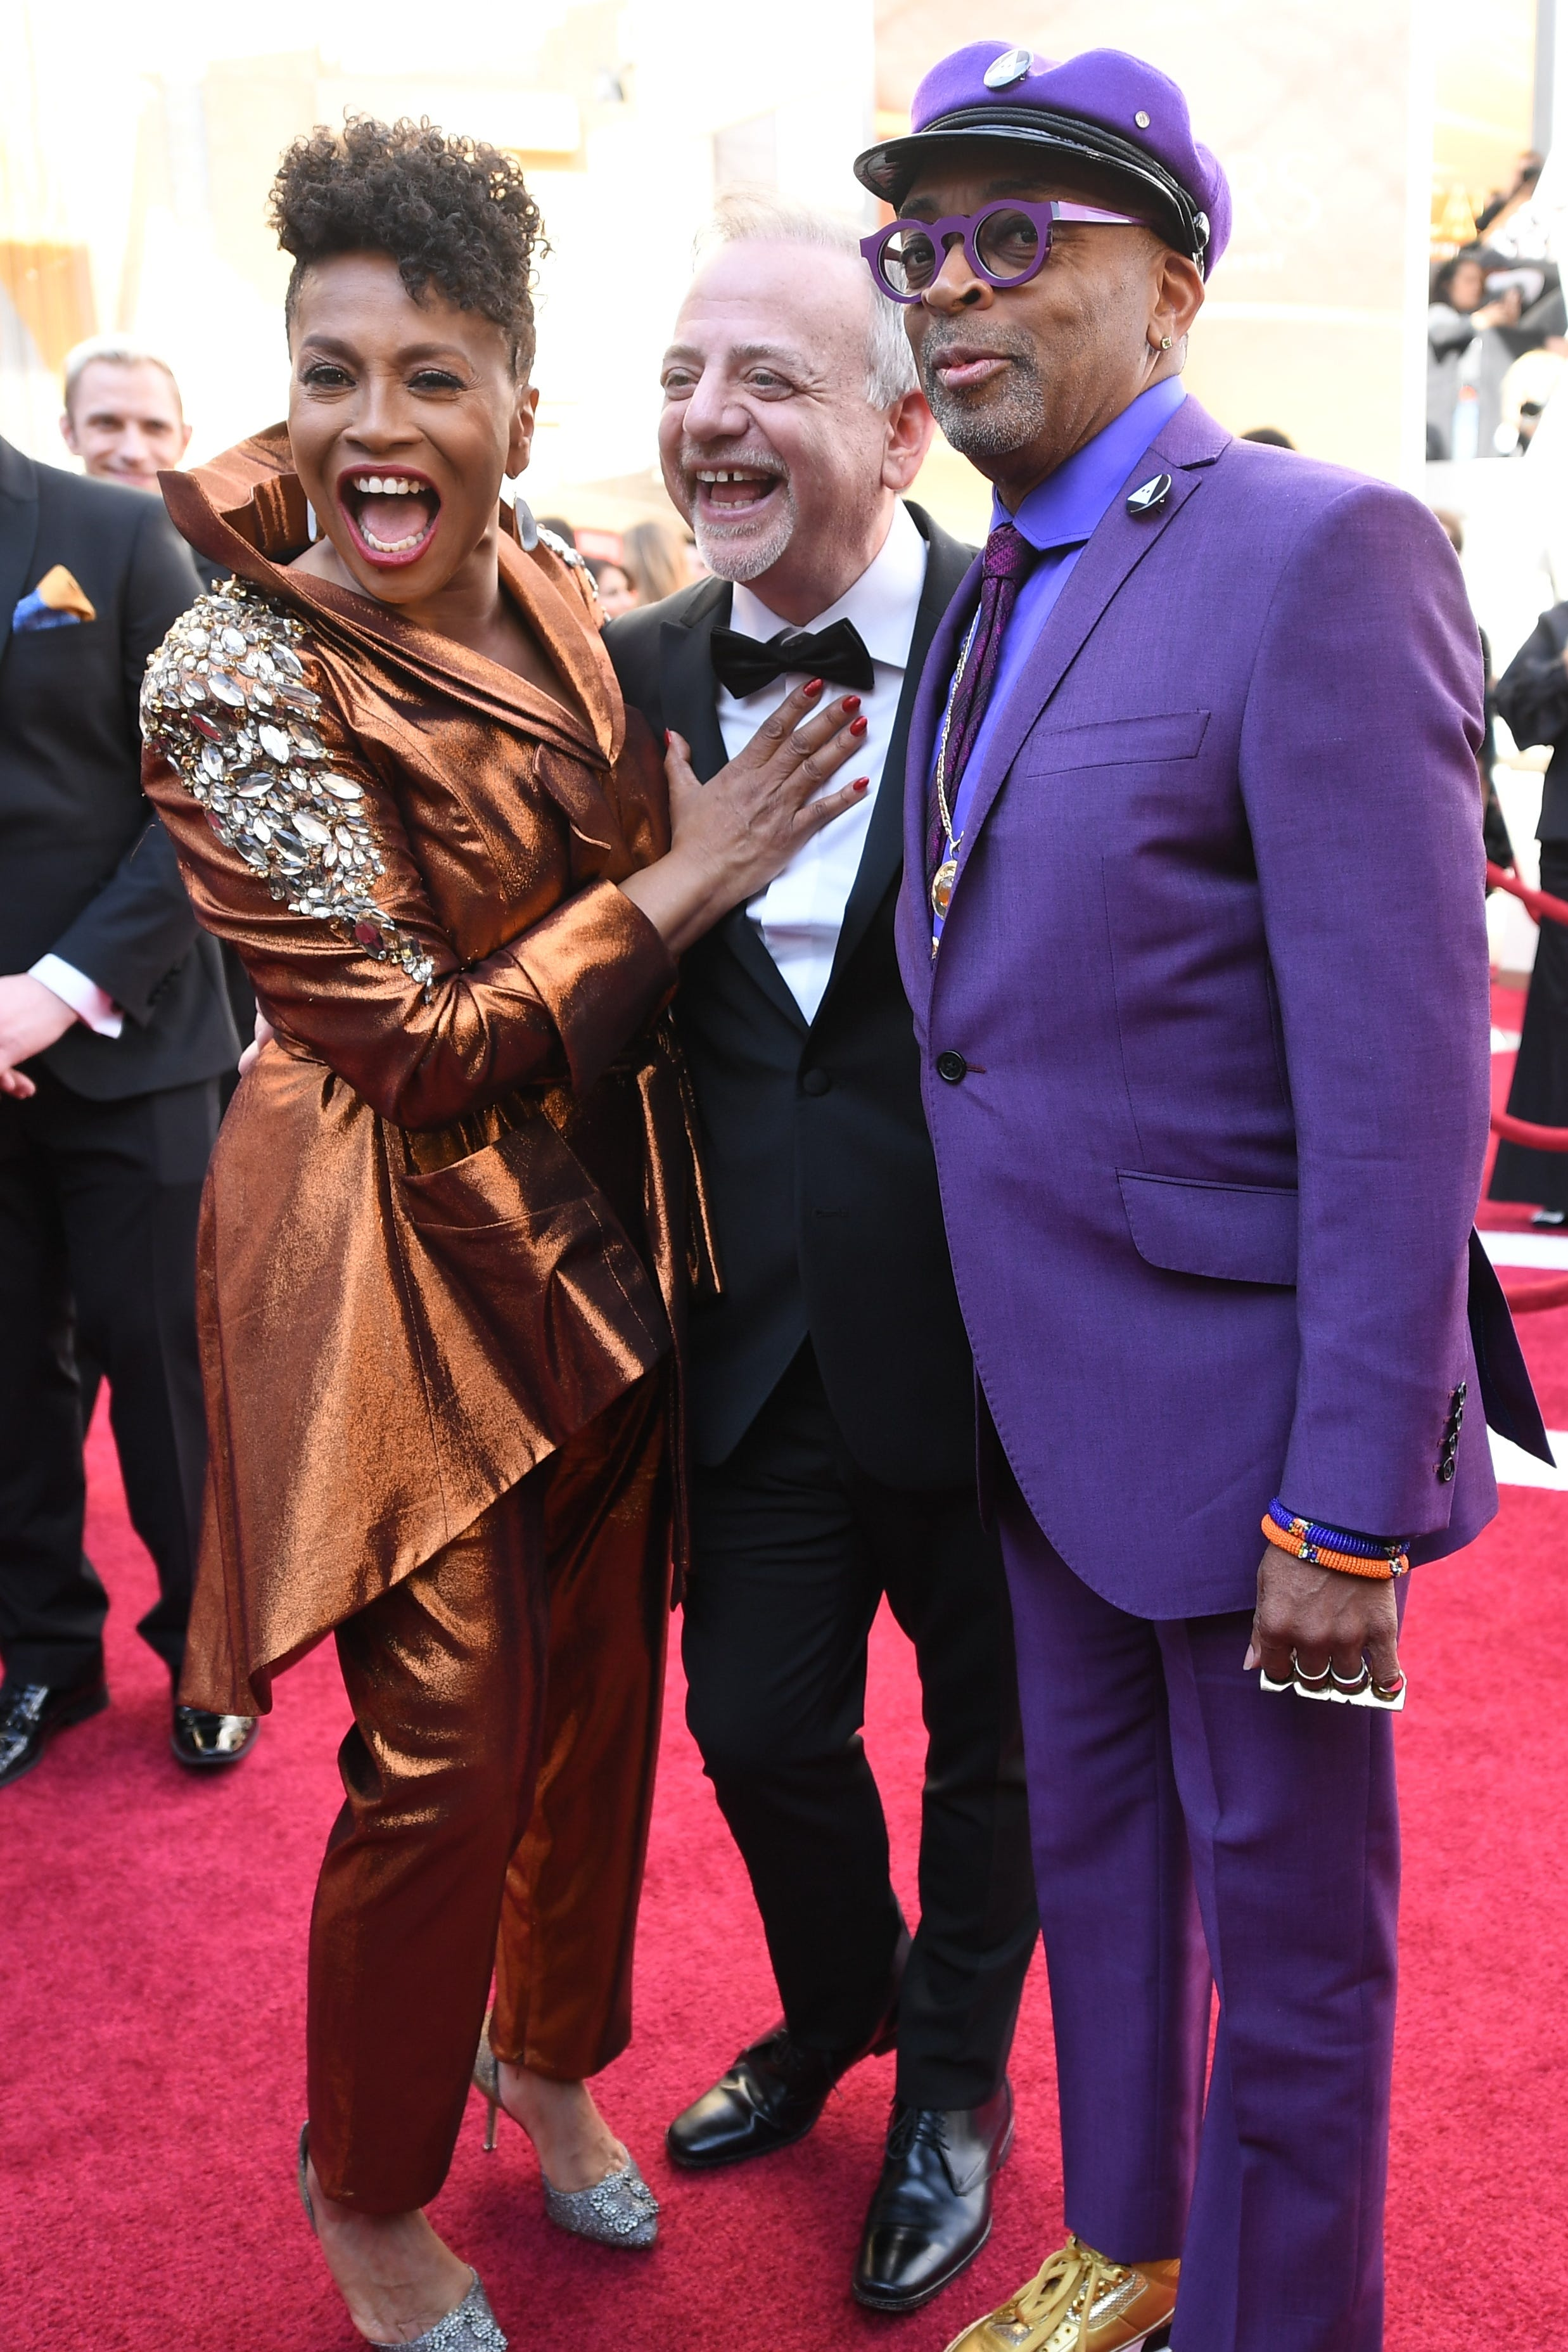 February 24, 2019; Los Angeles, CA, USA; (L-R) Jenifer Lewis, Marc Shaiman and Spike Lee arrive at the 91st Academy Awards at the Dolby Theatre. Mandatory Credit: Robert Hanashiro-USA TODAY NETWORK (Via OlyDrop)